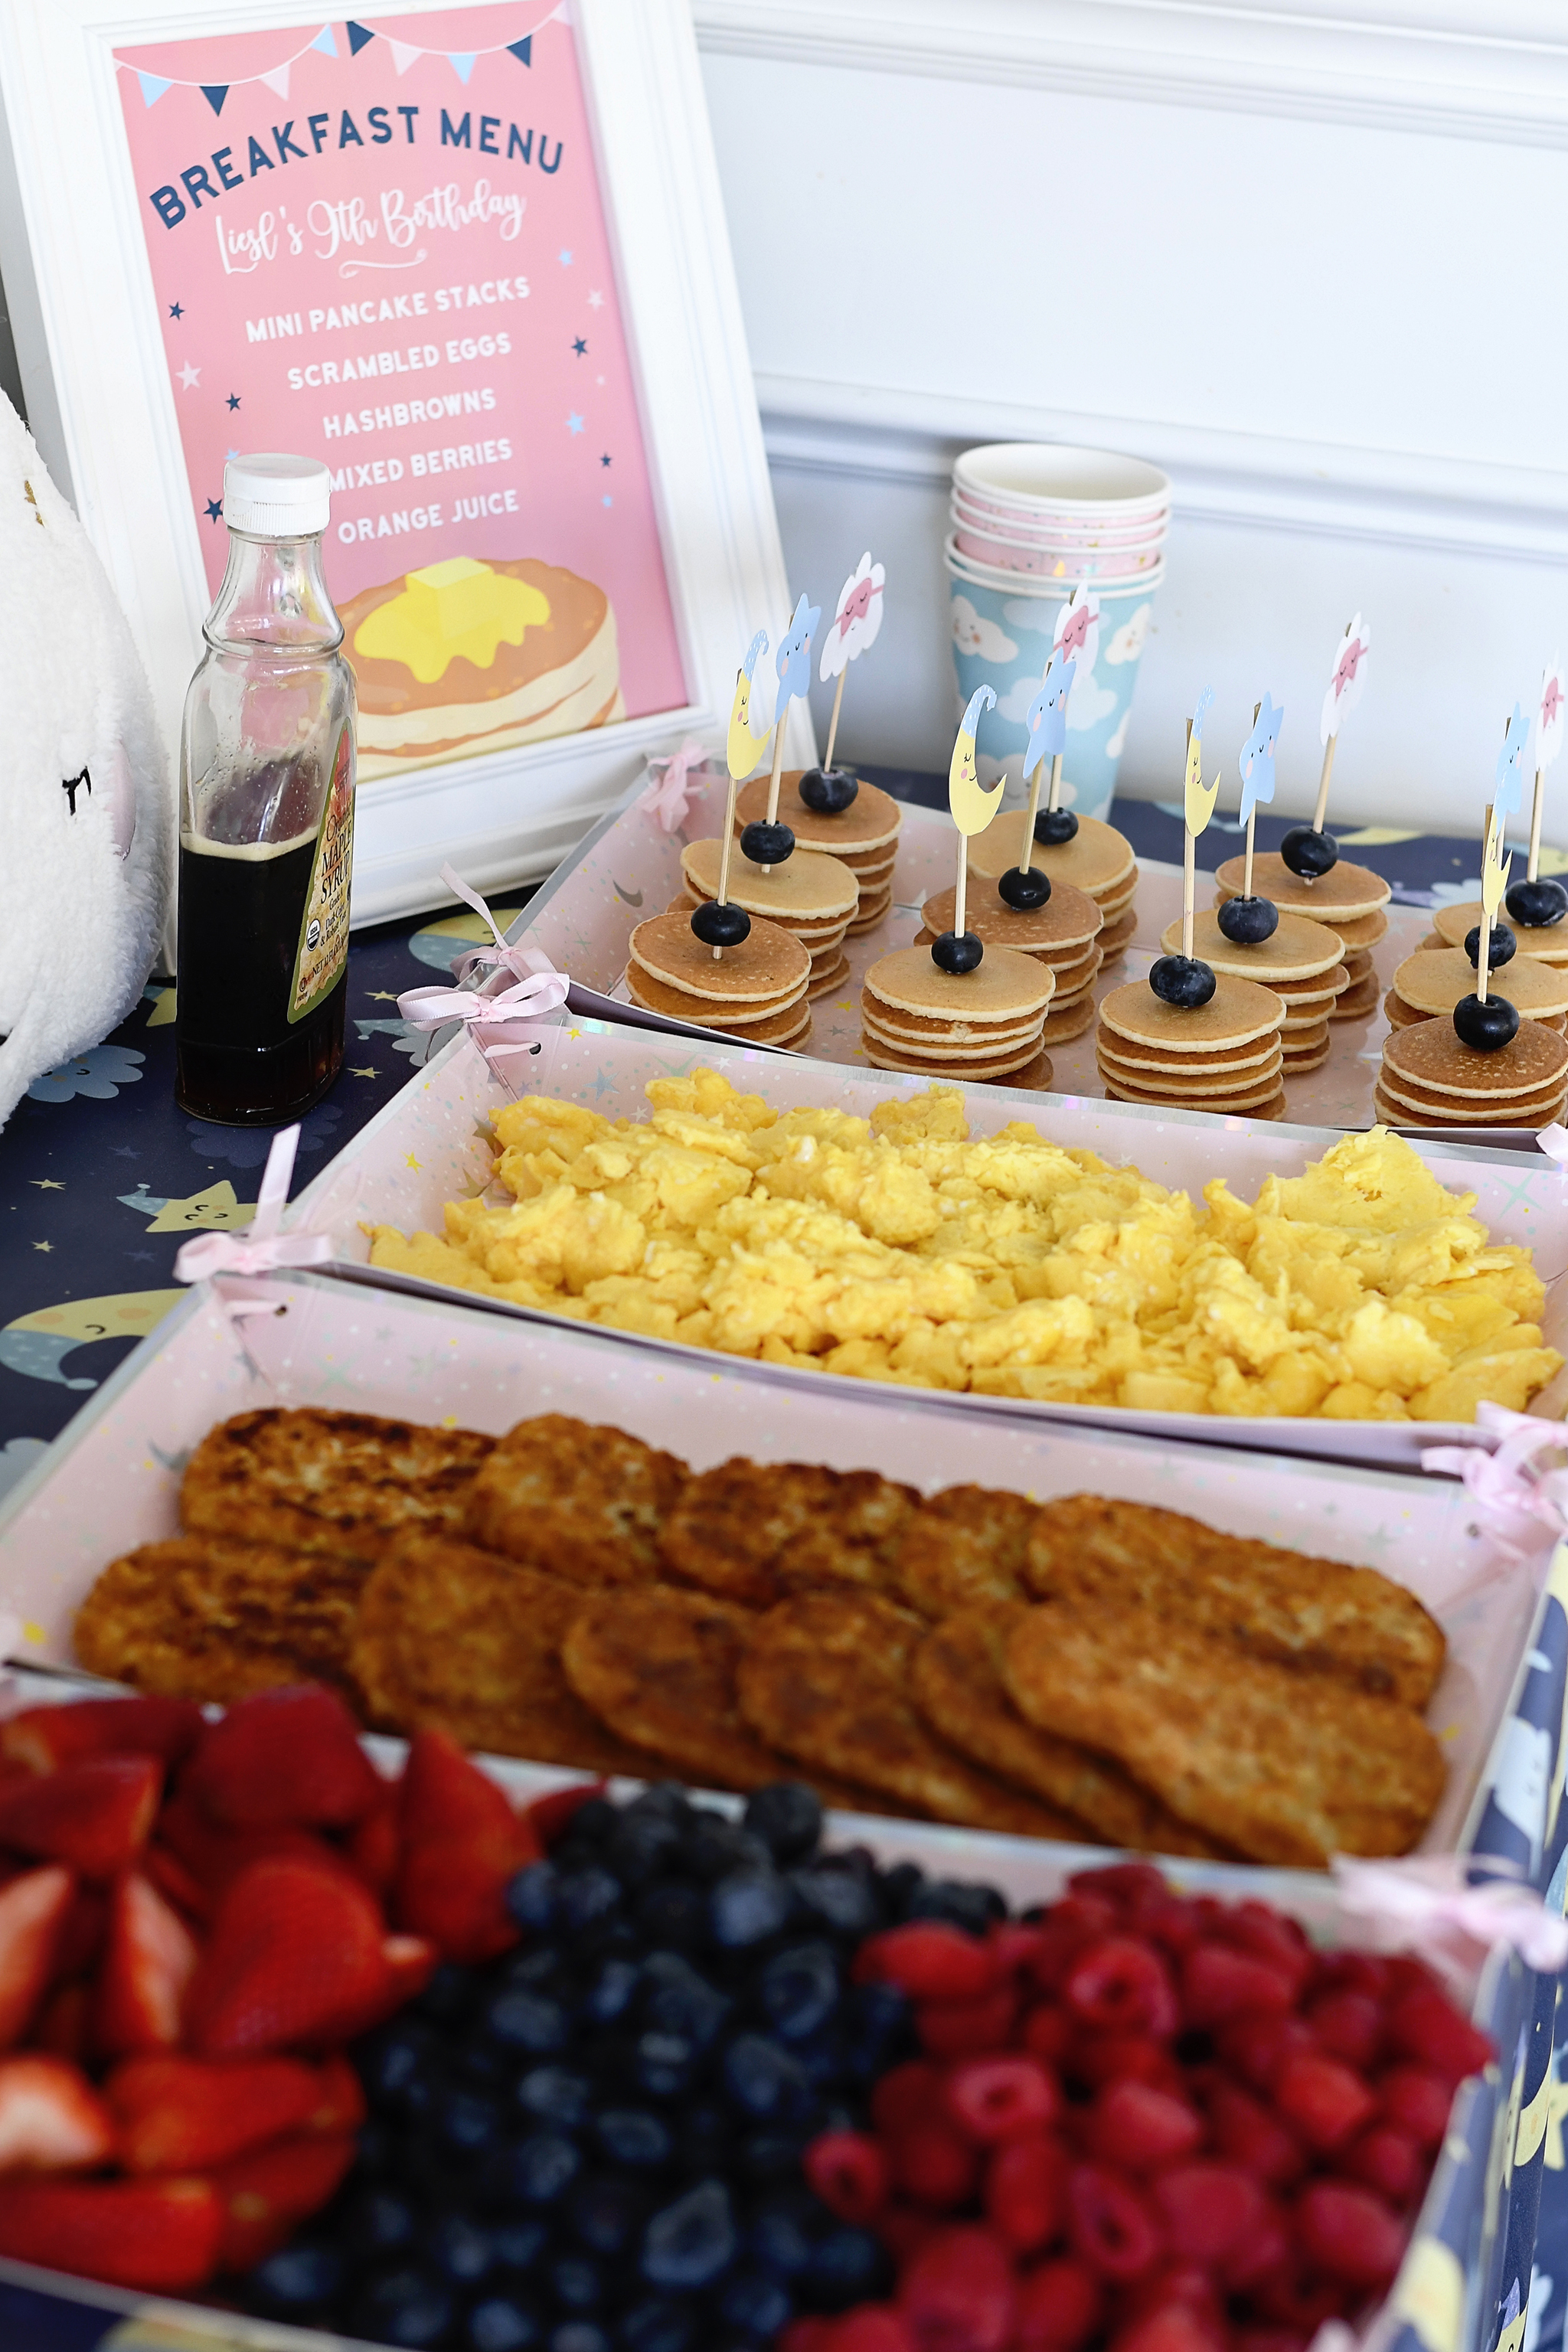 Pancakes in Pajamas - Offer a breakfast themed food bar!